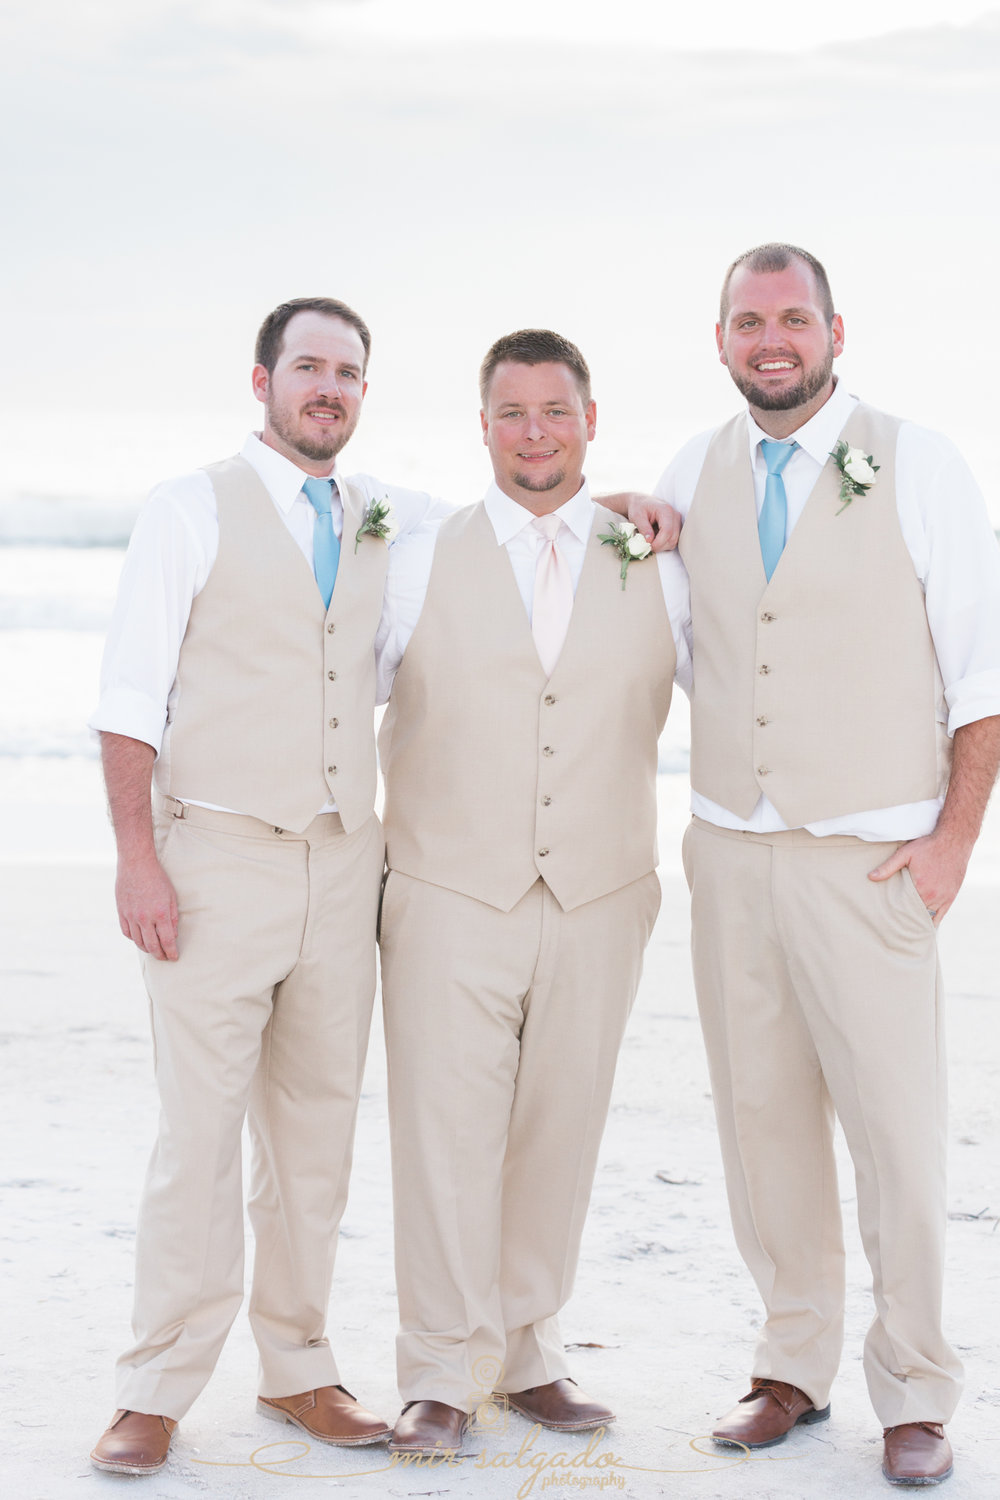 groom-and-groomsmen-wedding-photo, beach-wedding